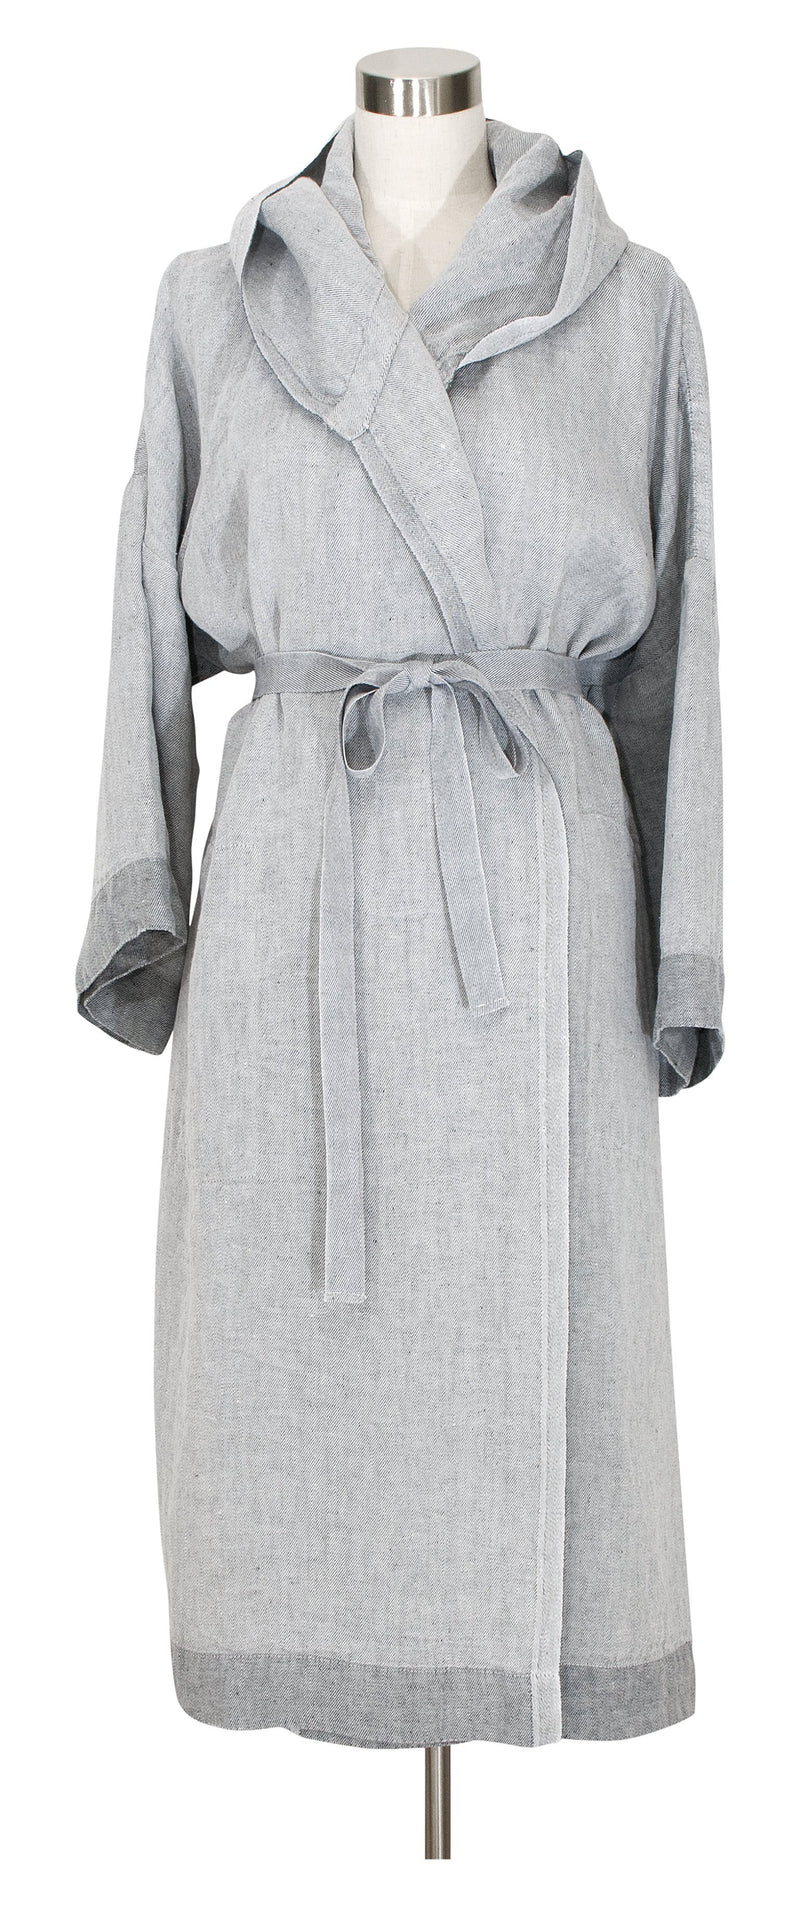 Lapuan Kankurit Bathrobe XS / Grey Kaste Hooded Bathrobe | Washed Linen